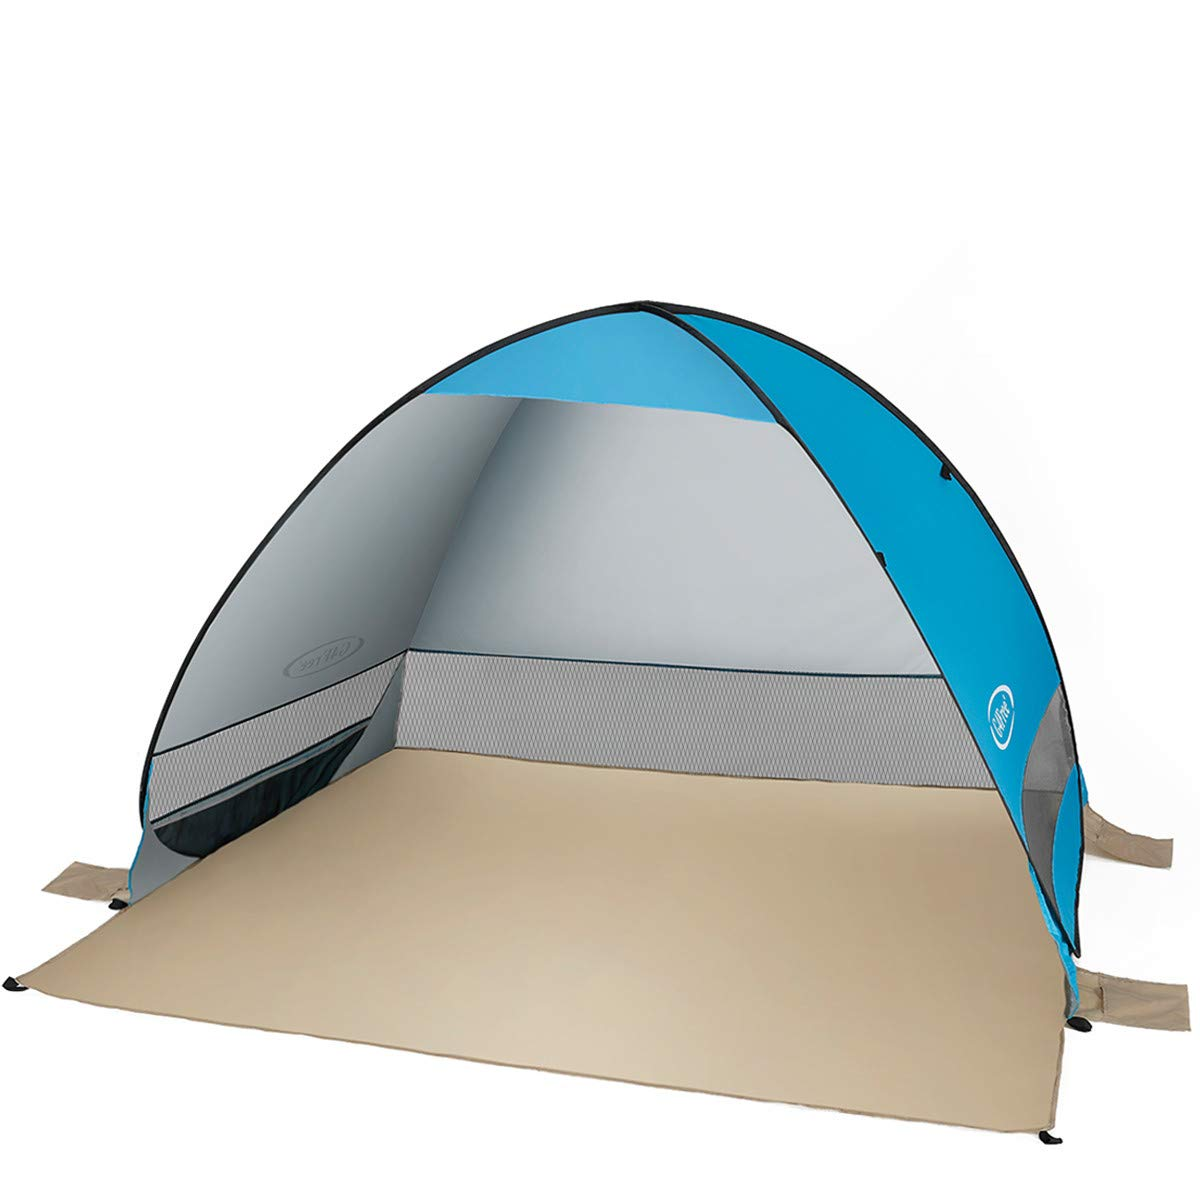 G4Free Outdoor Automatic Pop up Beach Tent Anti UV Portable Cabana Shelter by G4Free